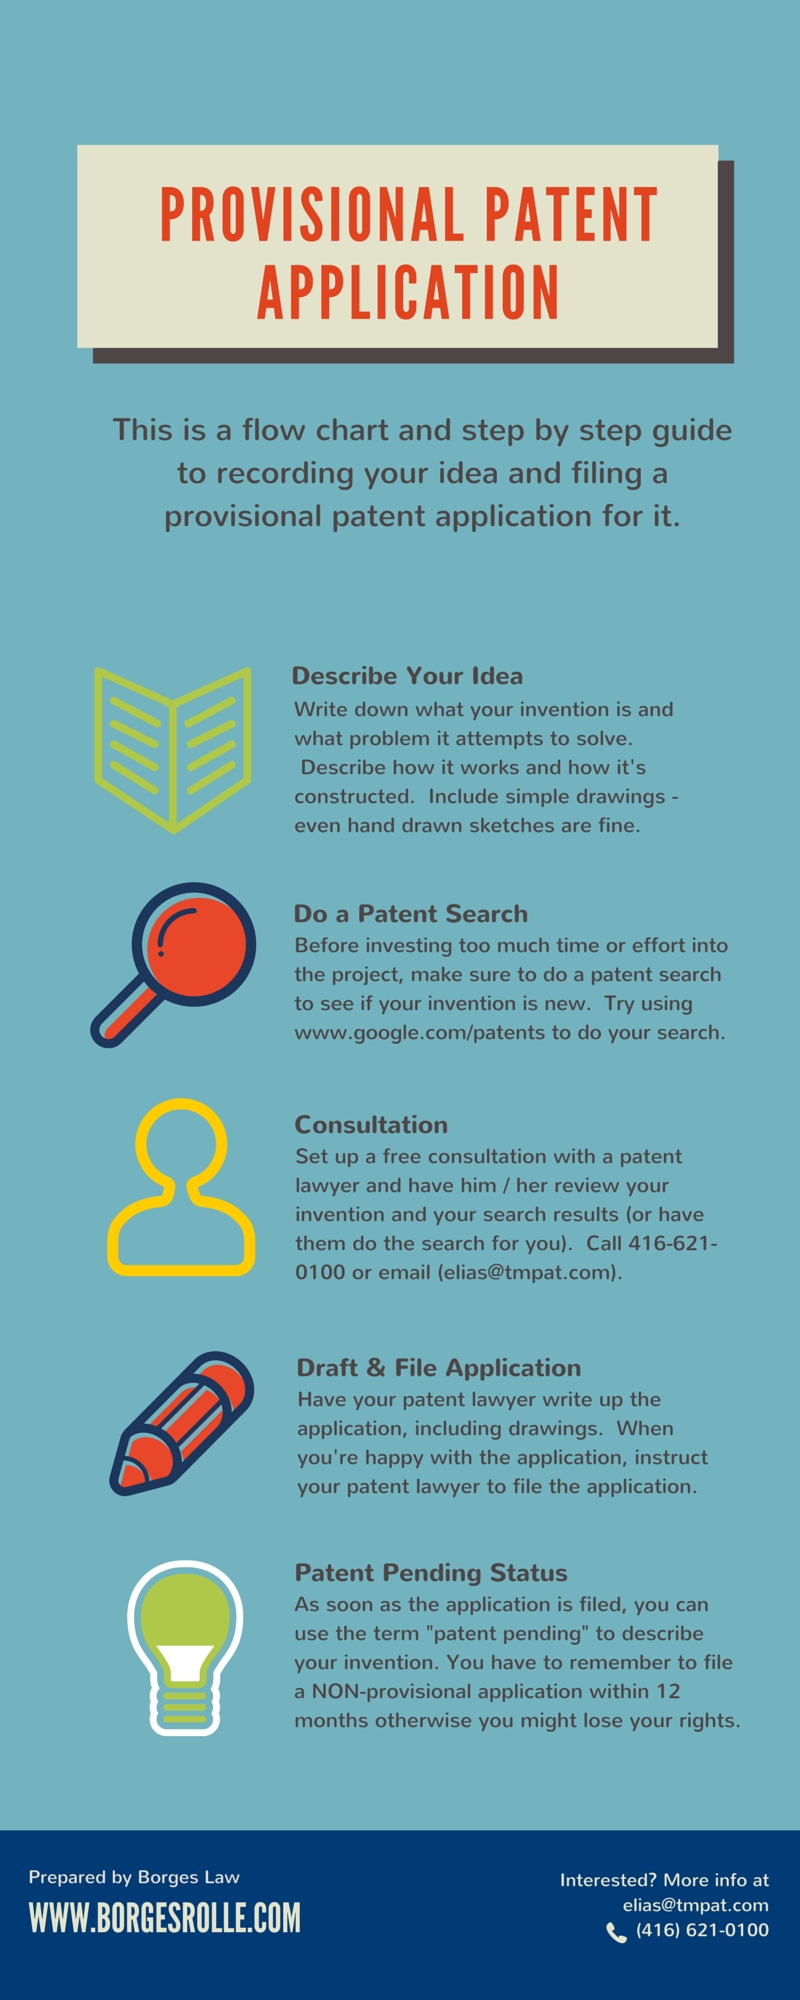 10 Unique Can I Patent An Idea provisional patent application how to file infographic 3 2020